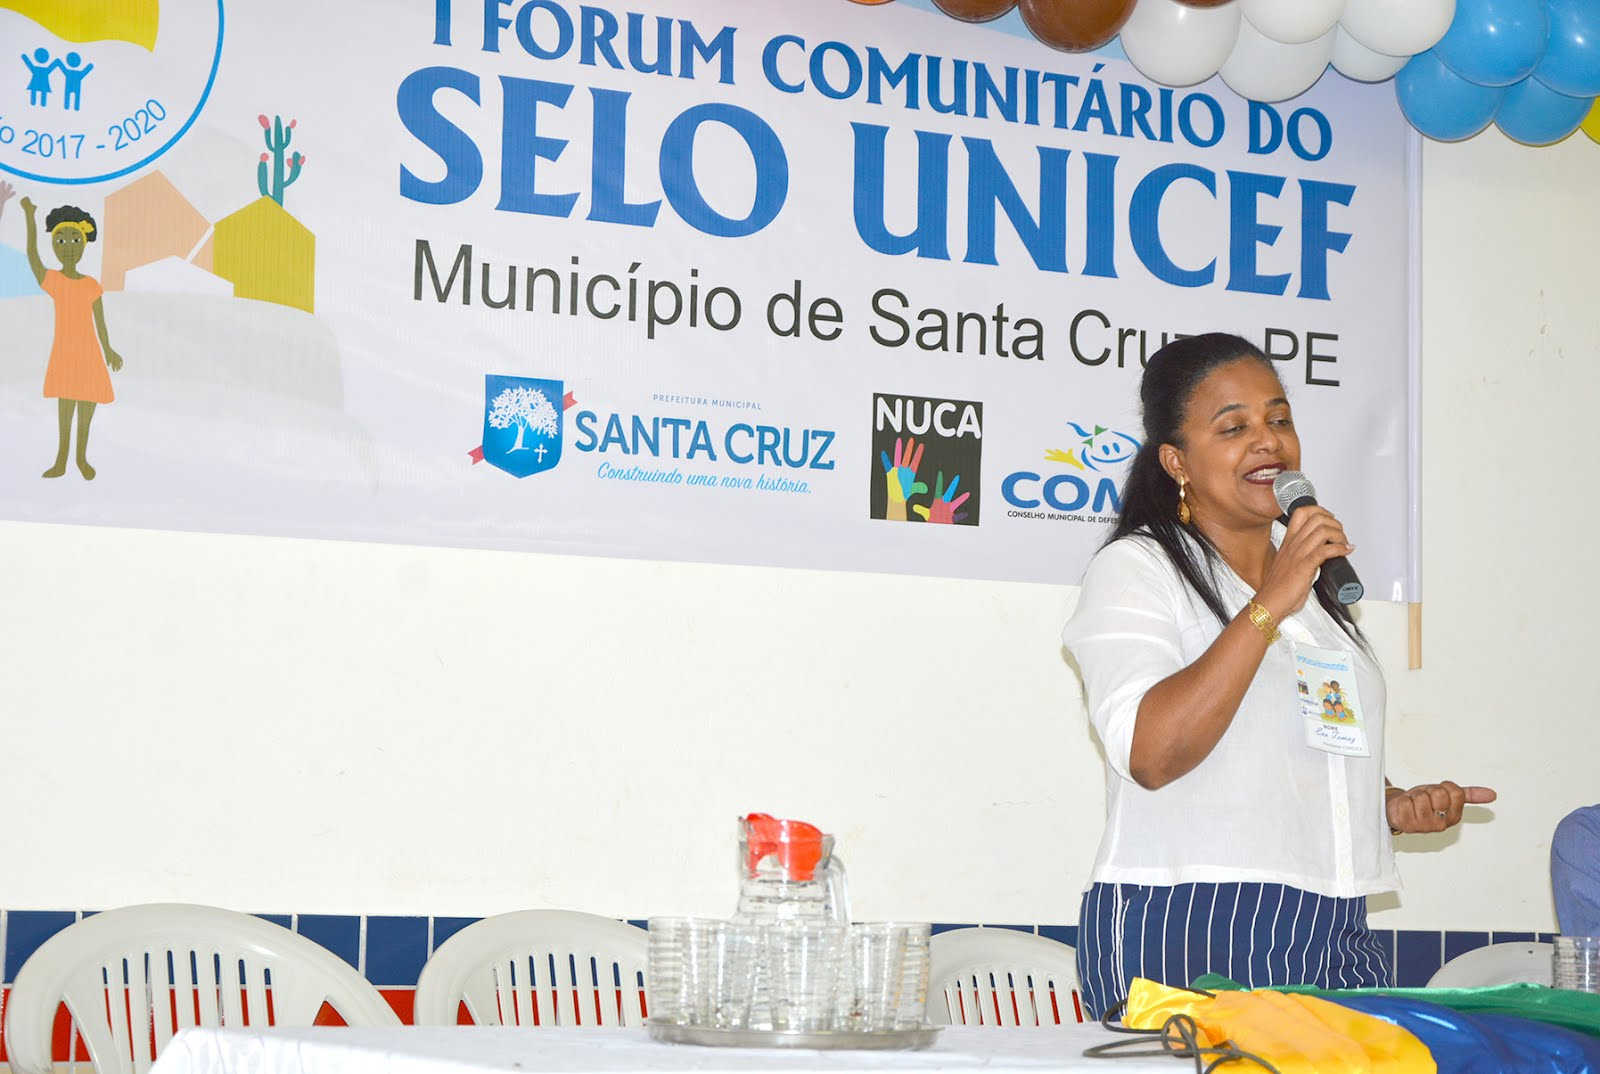 I FORUM COMUNITÁRIO DO SELO UNICEF